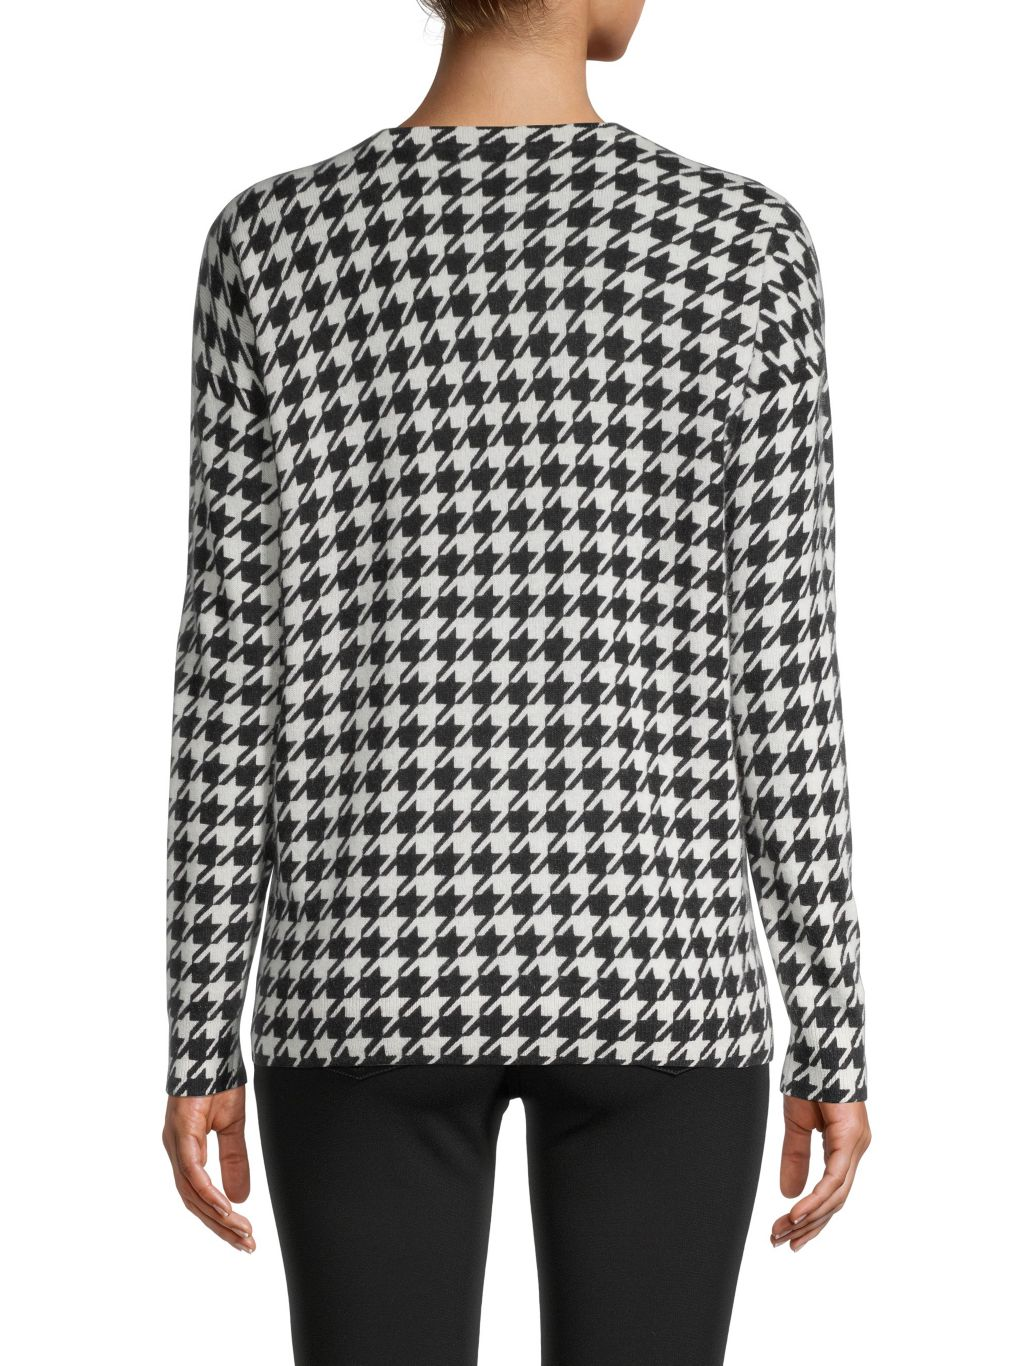 Saks Fifth Avenue Houndstooth Cashmere Sweater